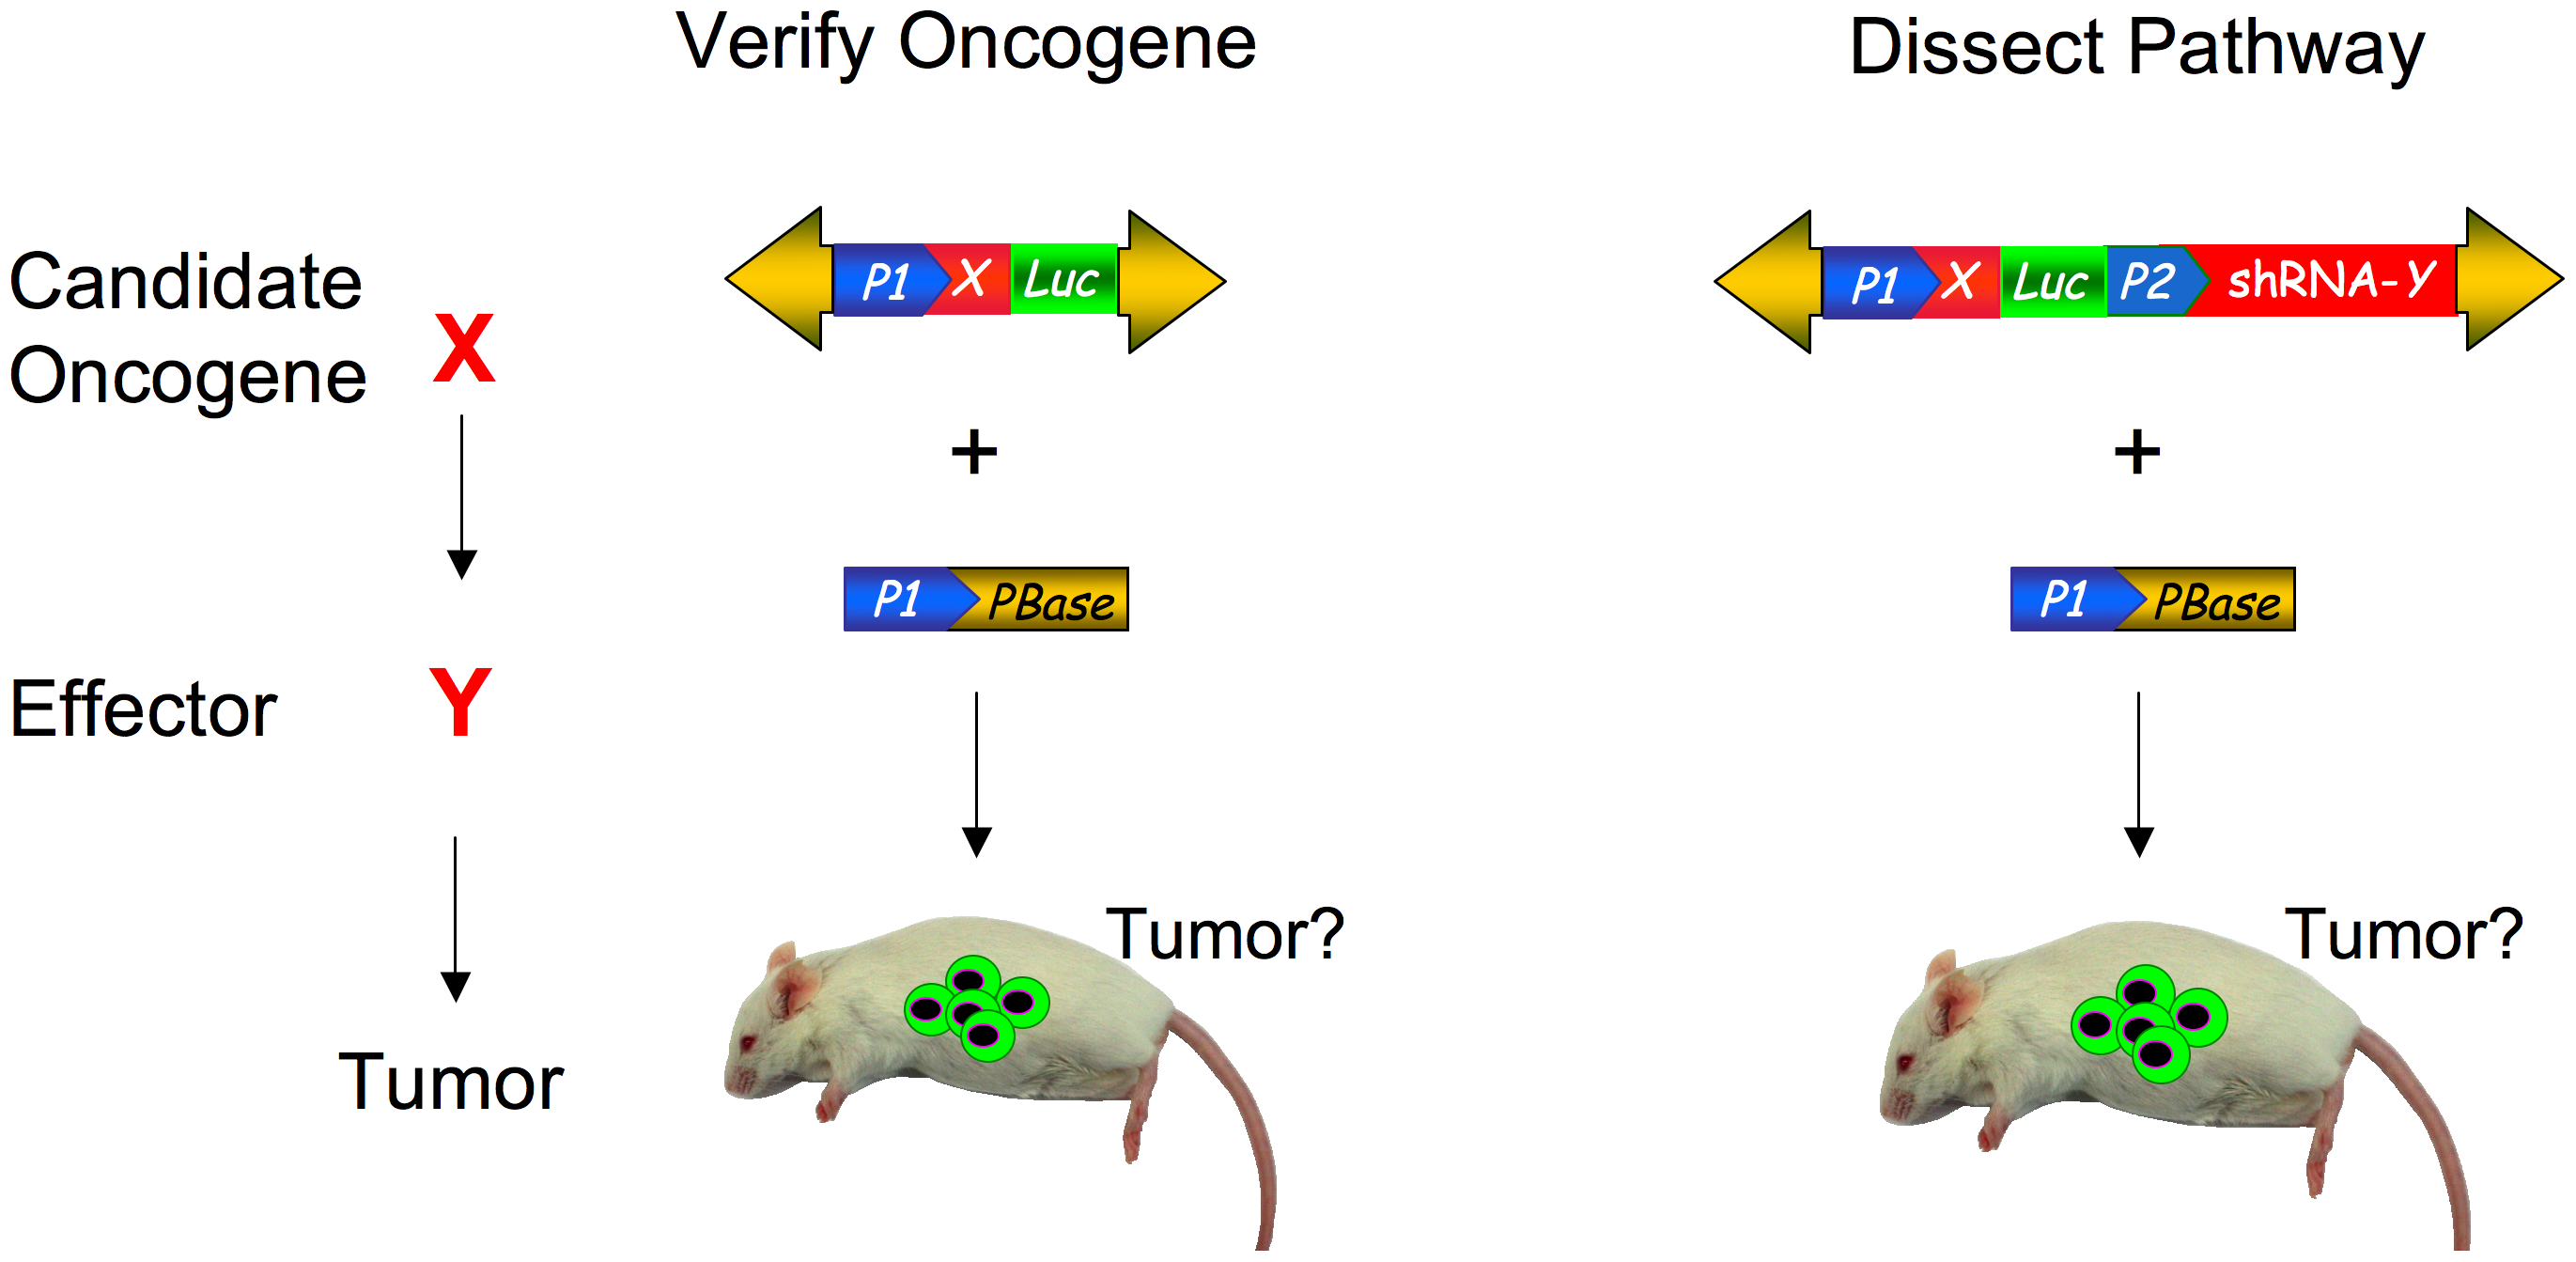 Somatic phenotypes like cancer can be modeled and genetically dissected with transposon mutagenesis.